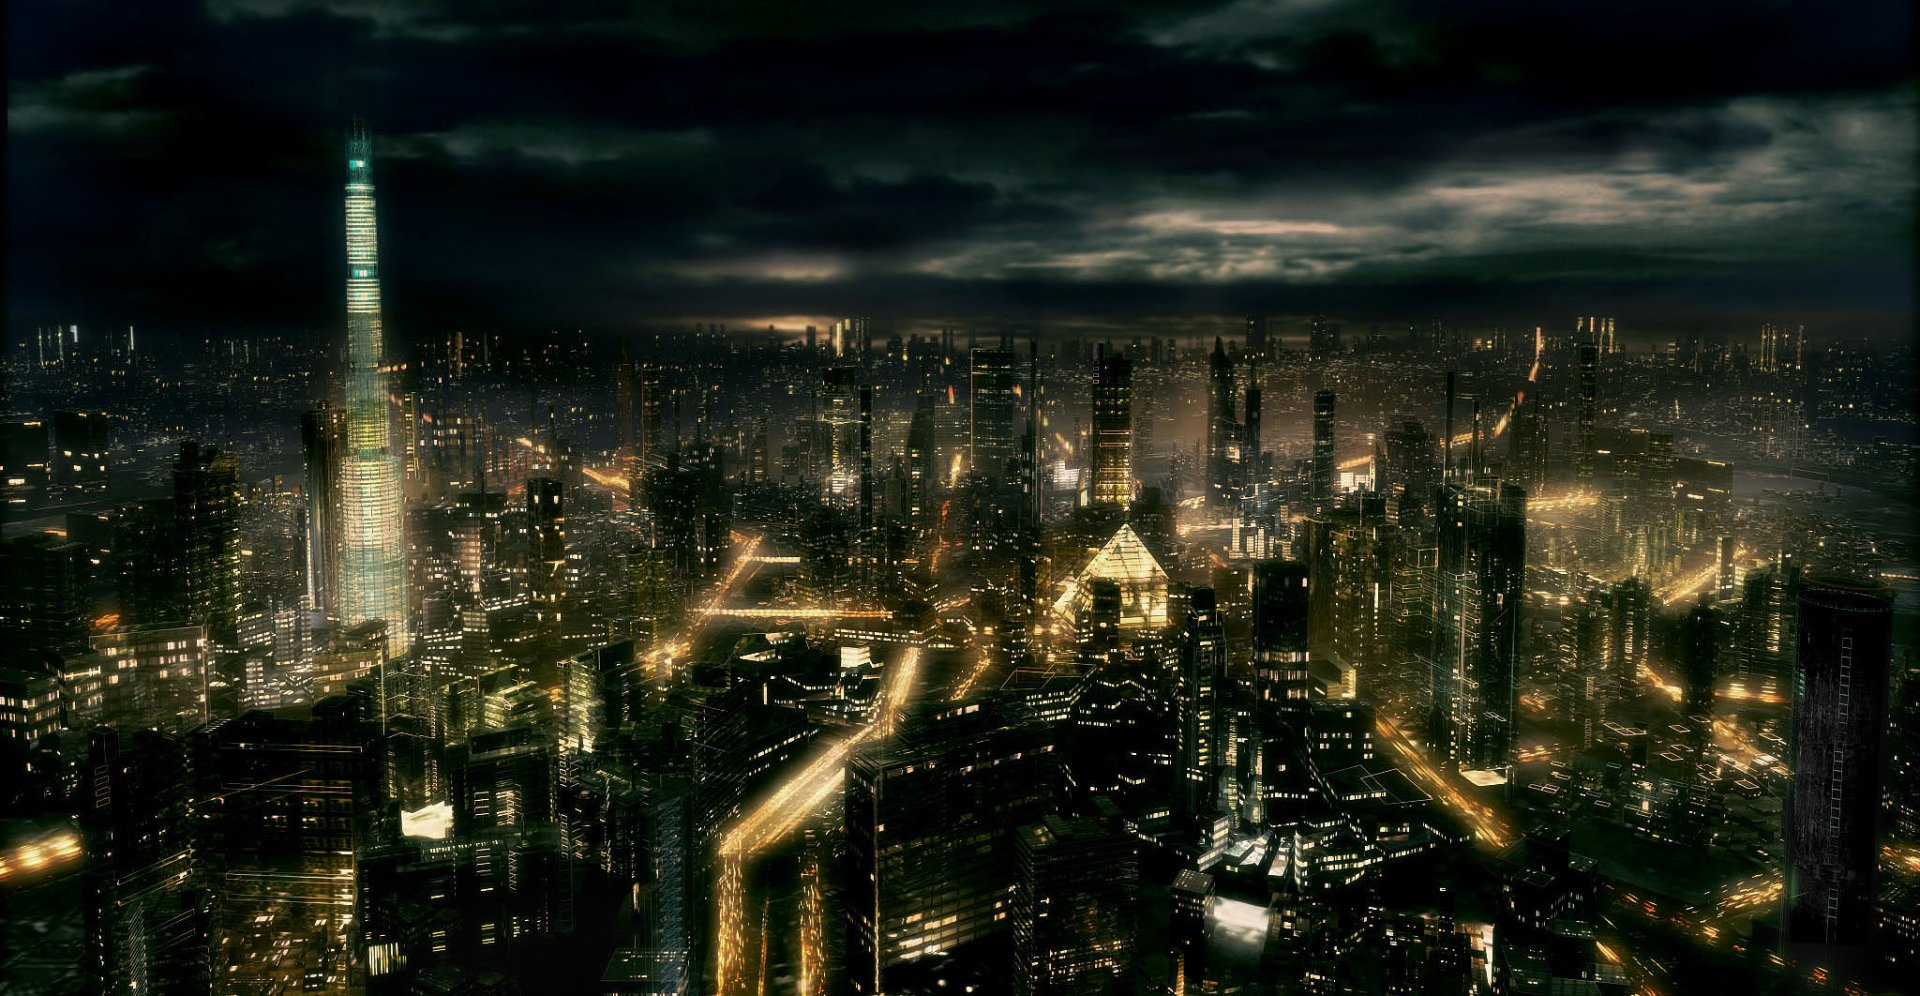 Sci Fi - City  Wallpaper